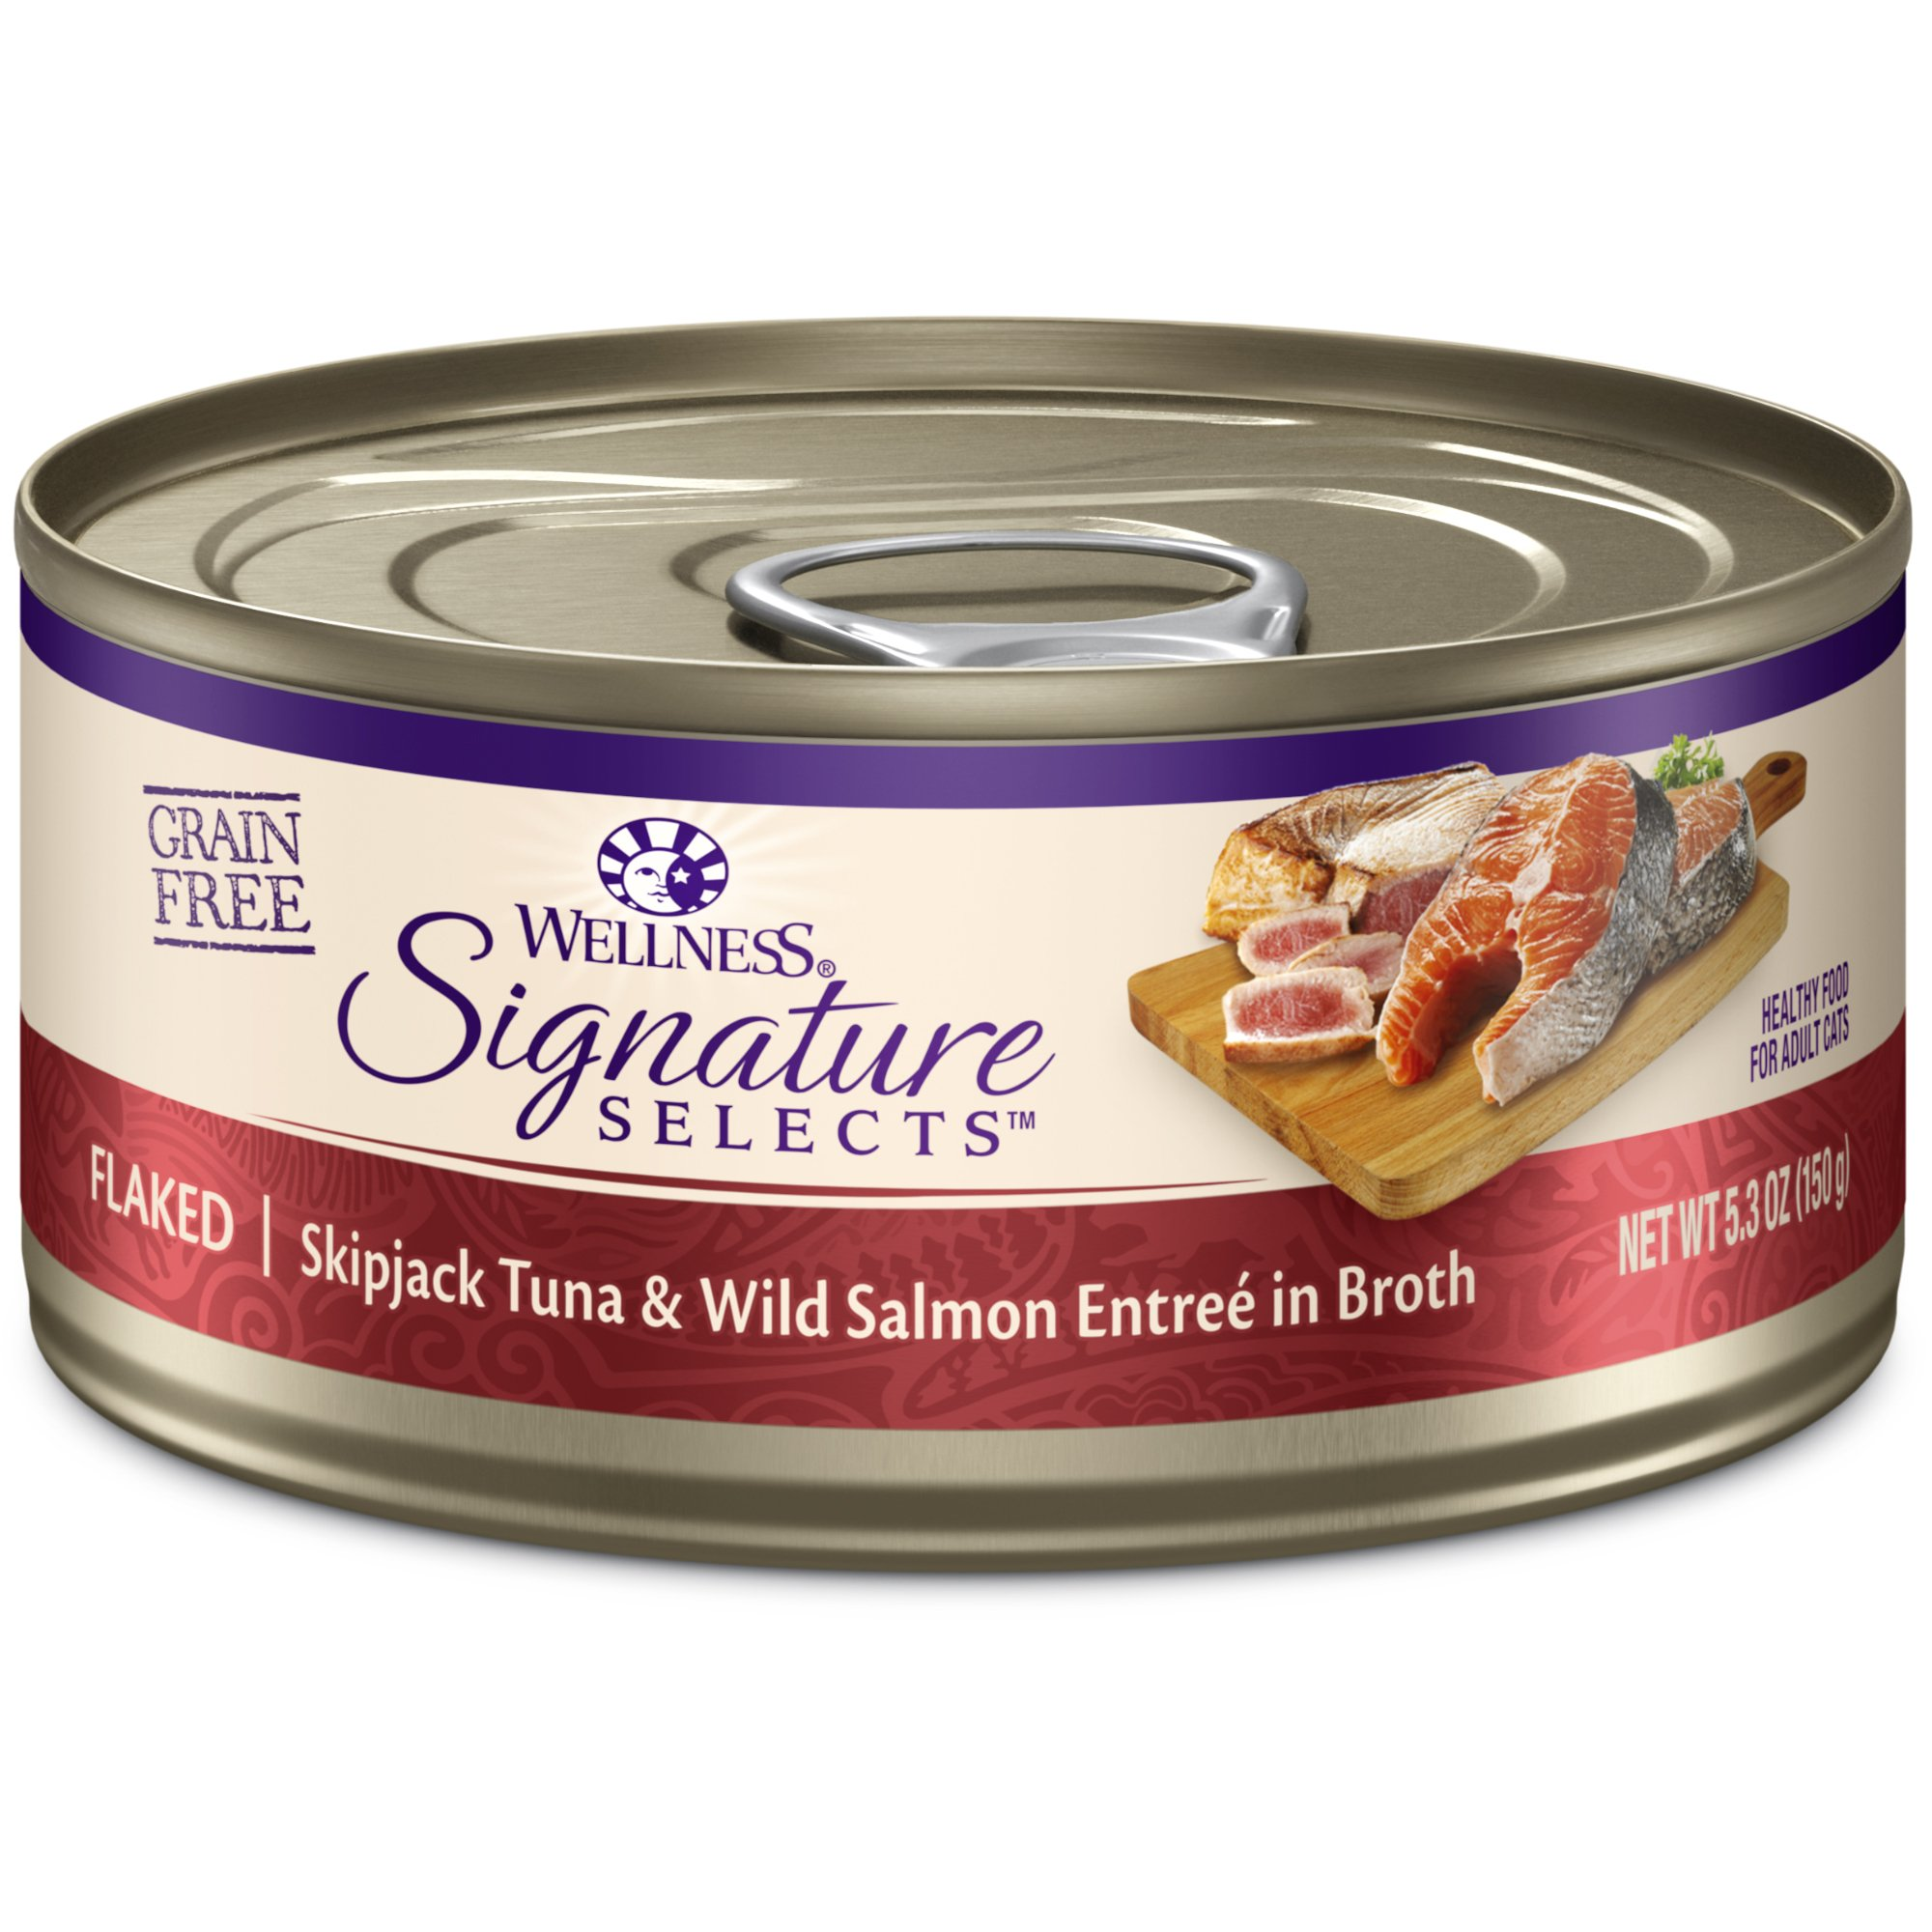 Wellness Core Signature Selects Grain Free Wet Canned Cat Food, Flaked Skipjack Tuna & Salmon, 5.3-Ounce (Pack Of 12) by Wellness Natural Pet Food